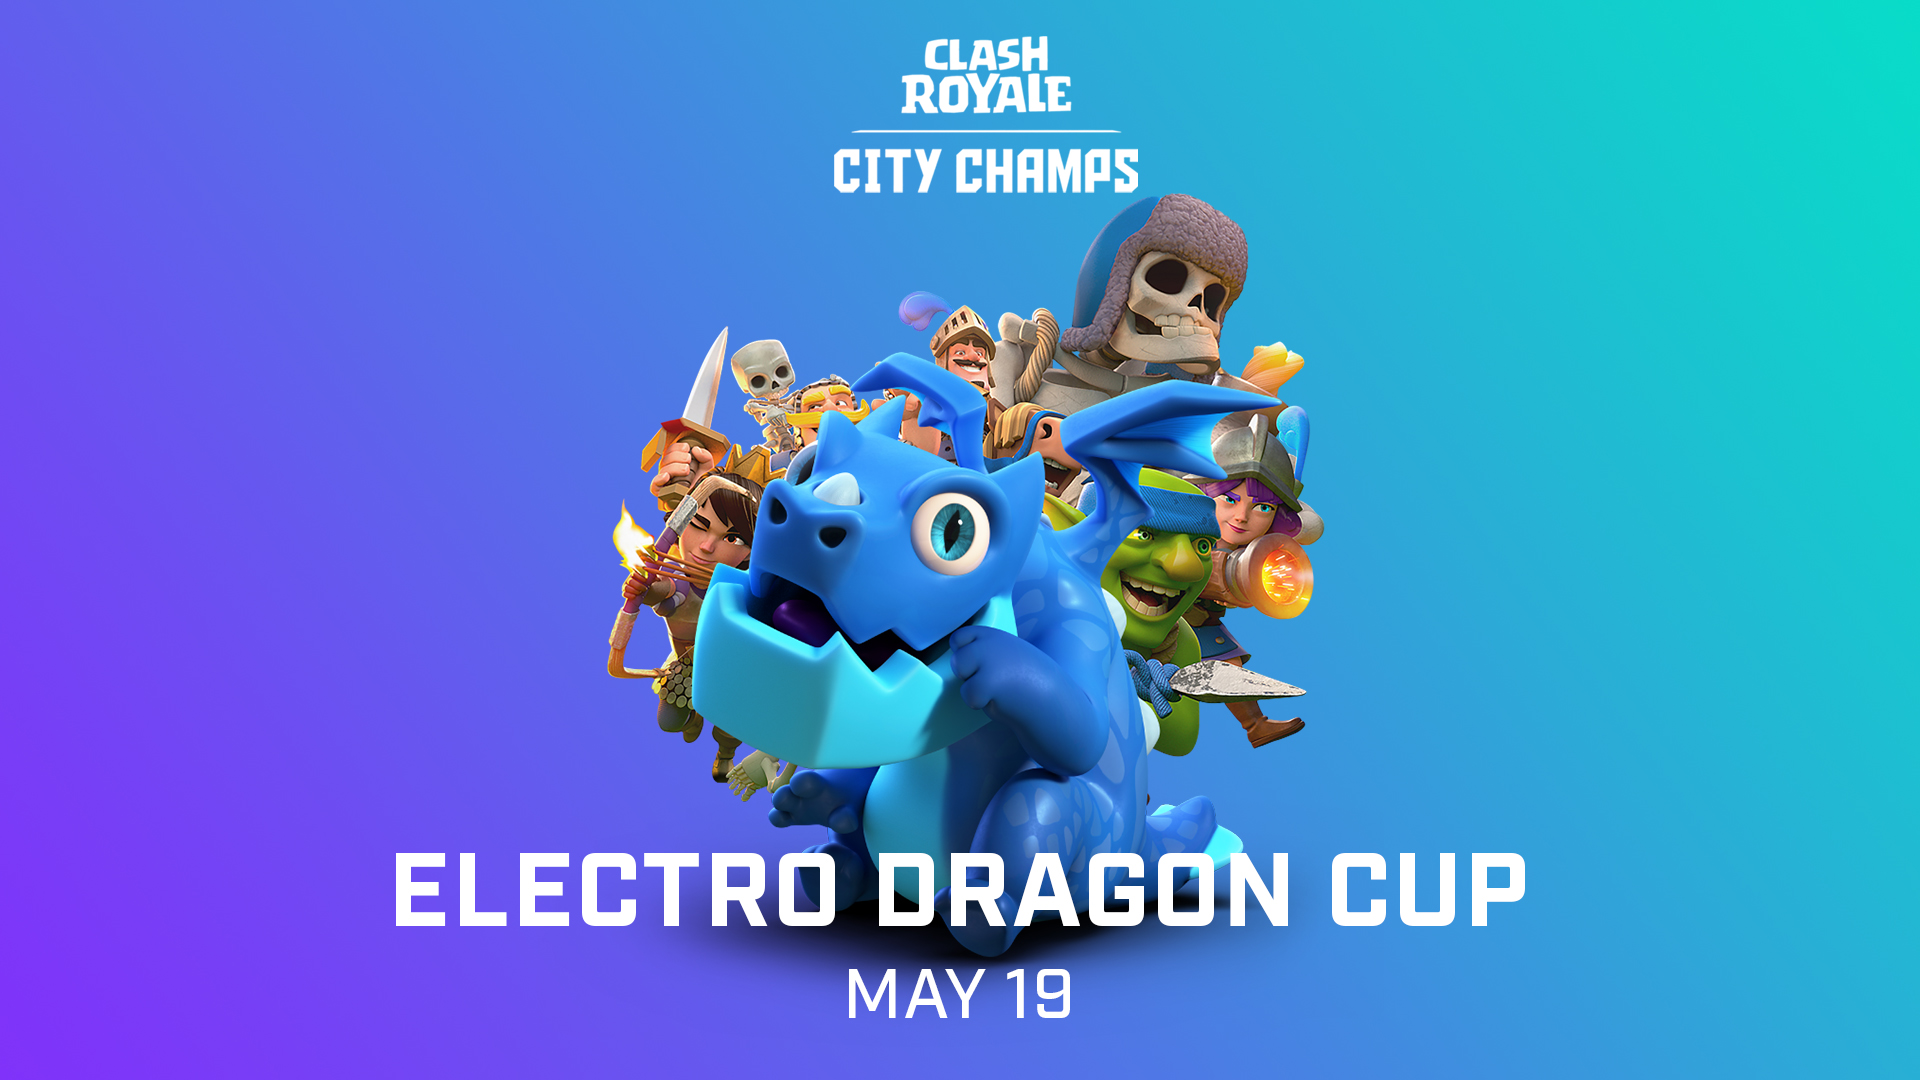 Your Guide To Clash Royale City Champs Season 2 Super - Clash Royale Electro Dragon , HD Wallpaper & Backgrounds